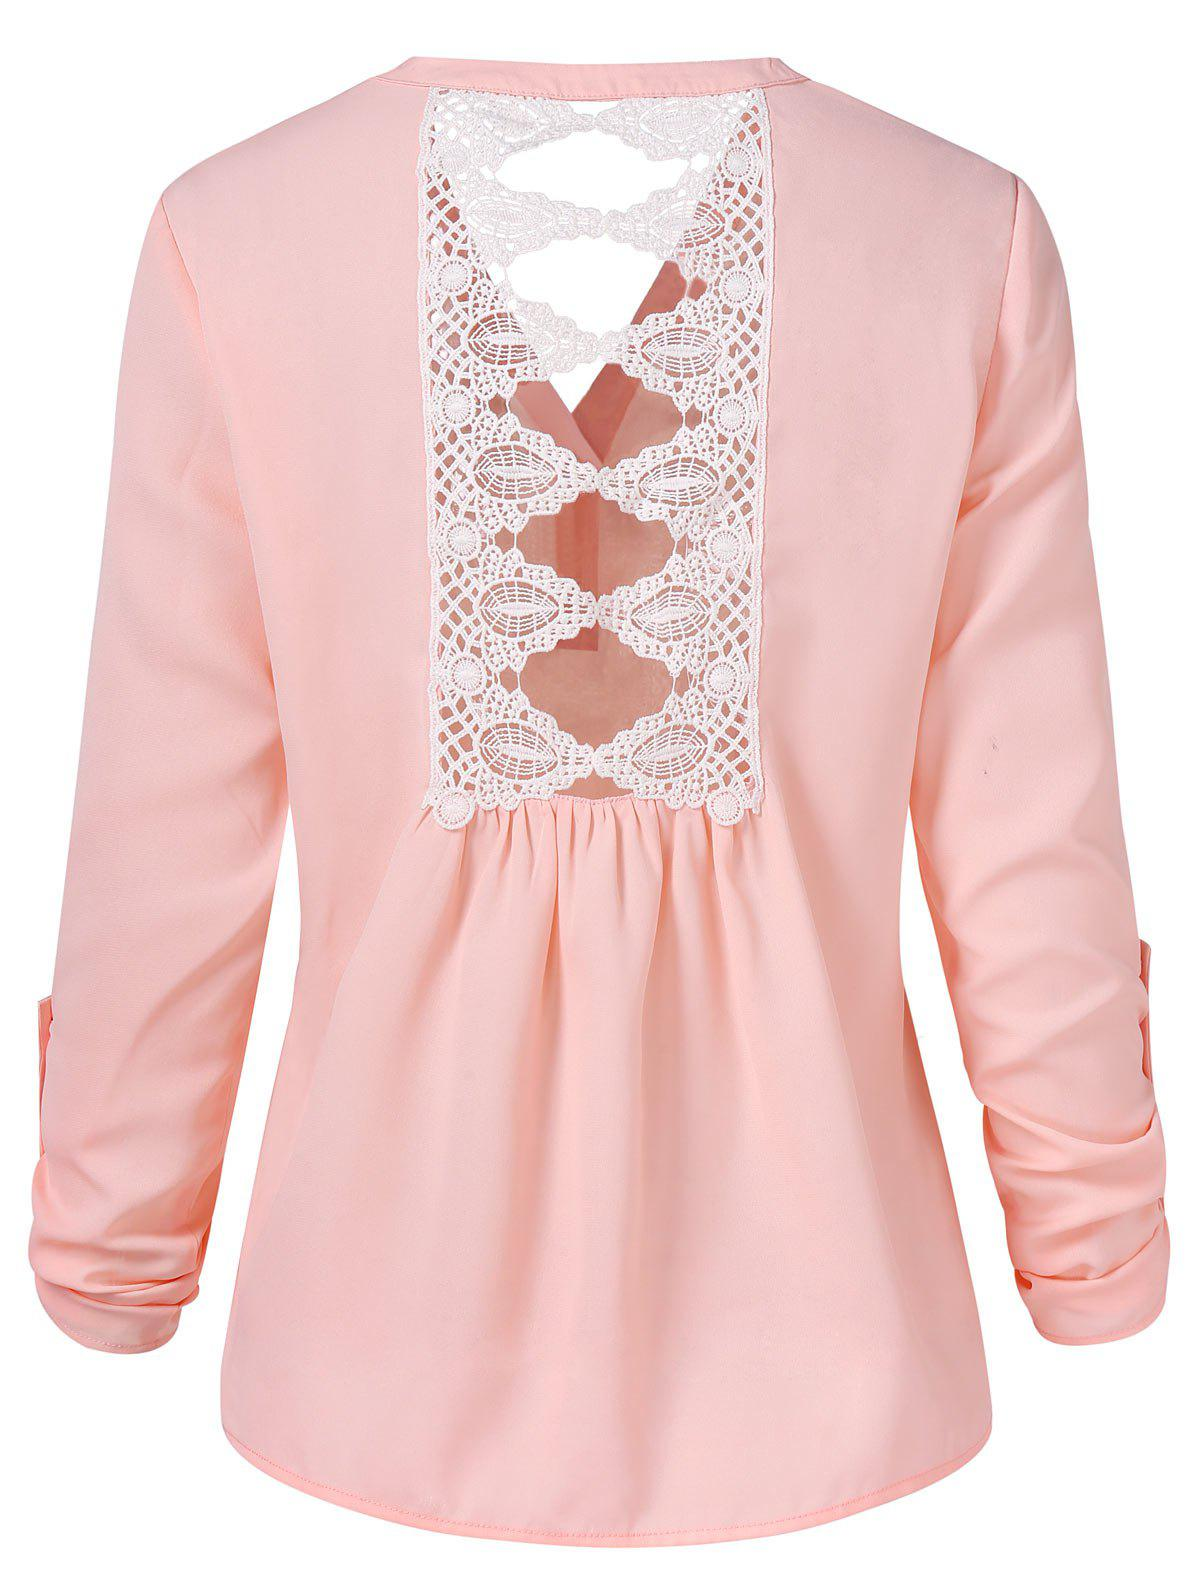 Cut Out Lace Panel Long Sleeve Blouse - LIGHT PINK M